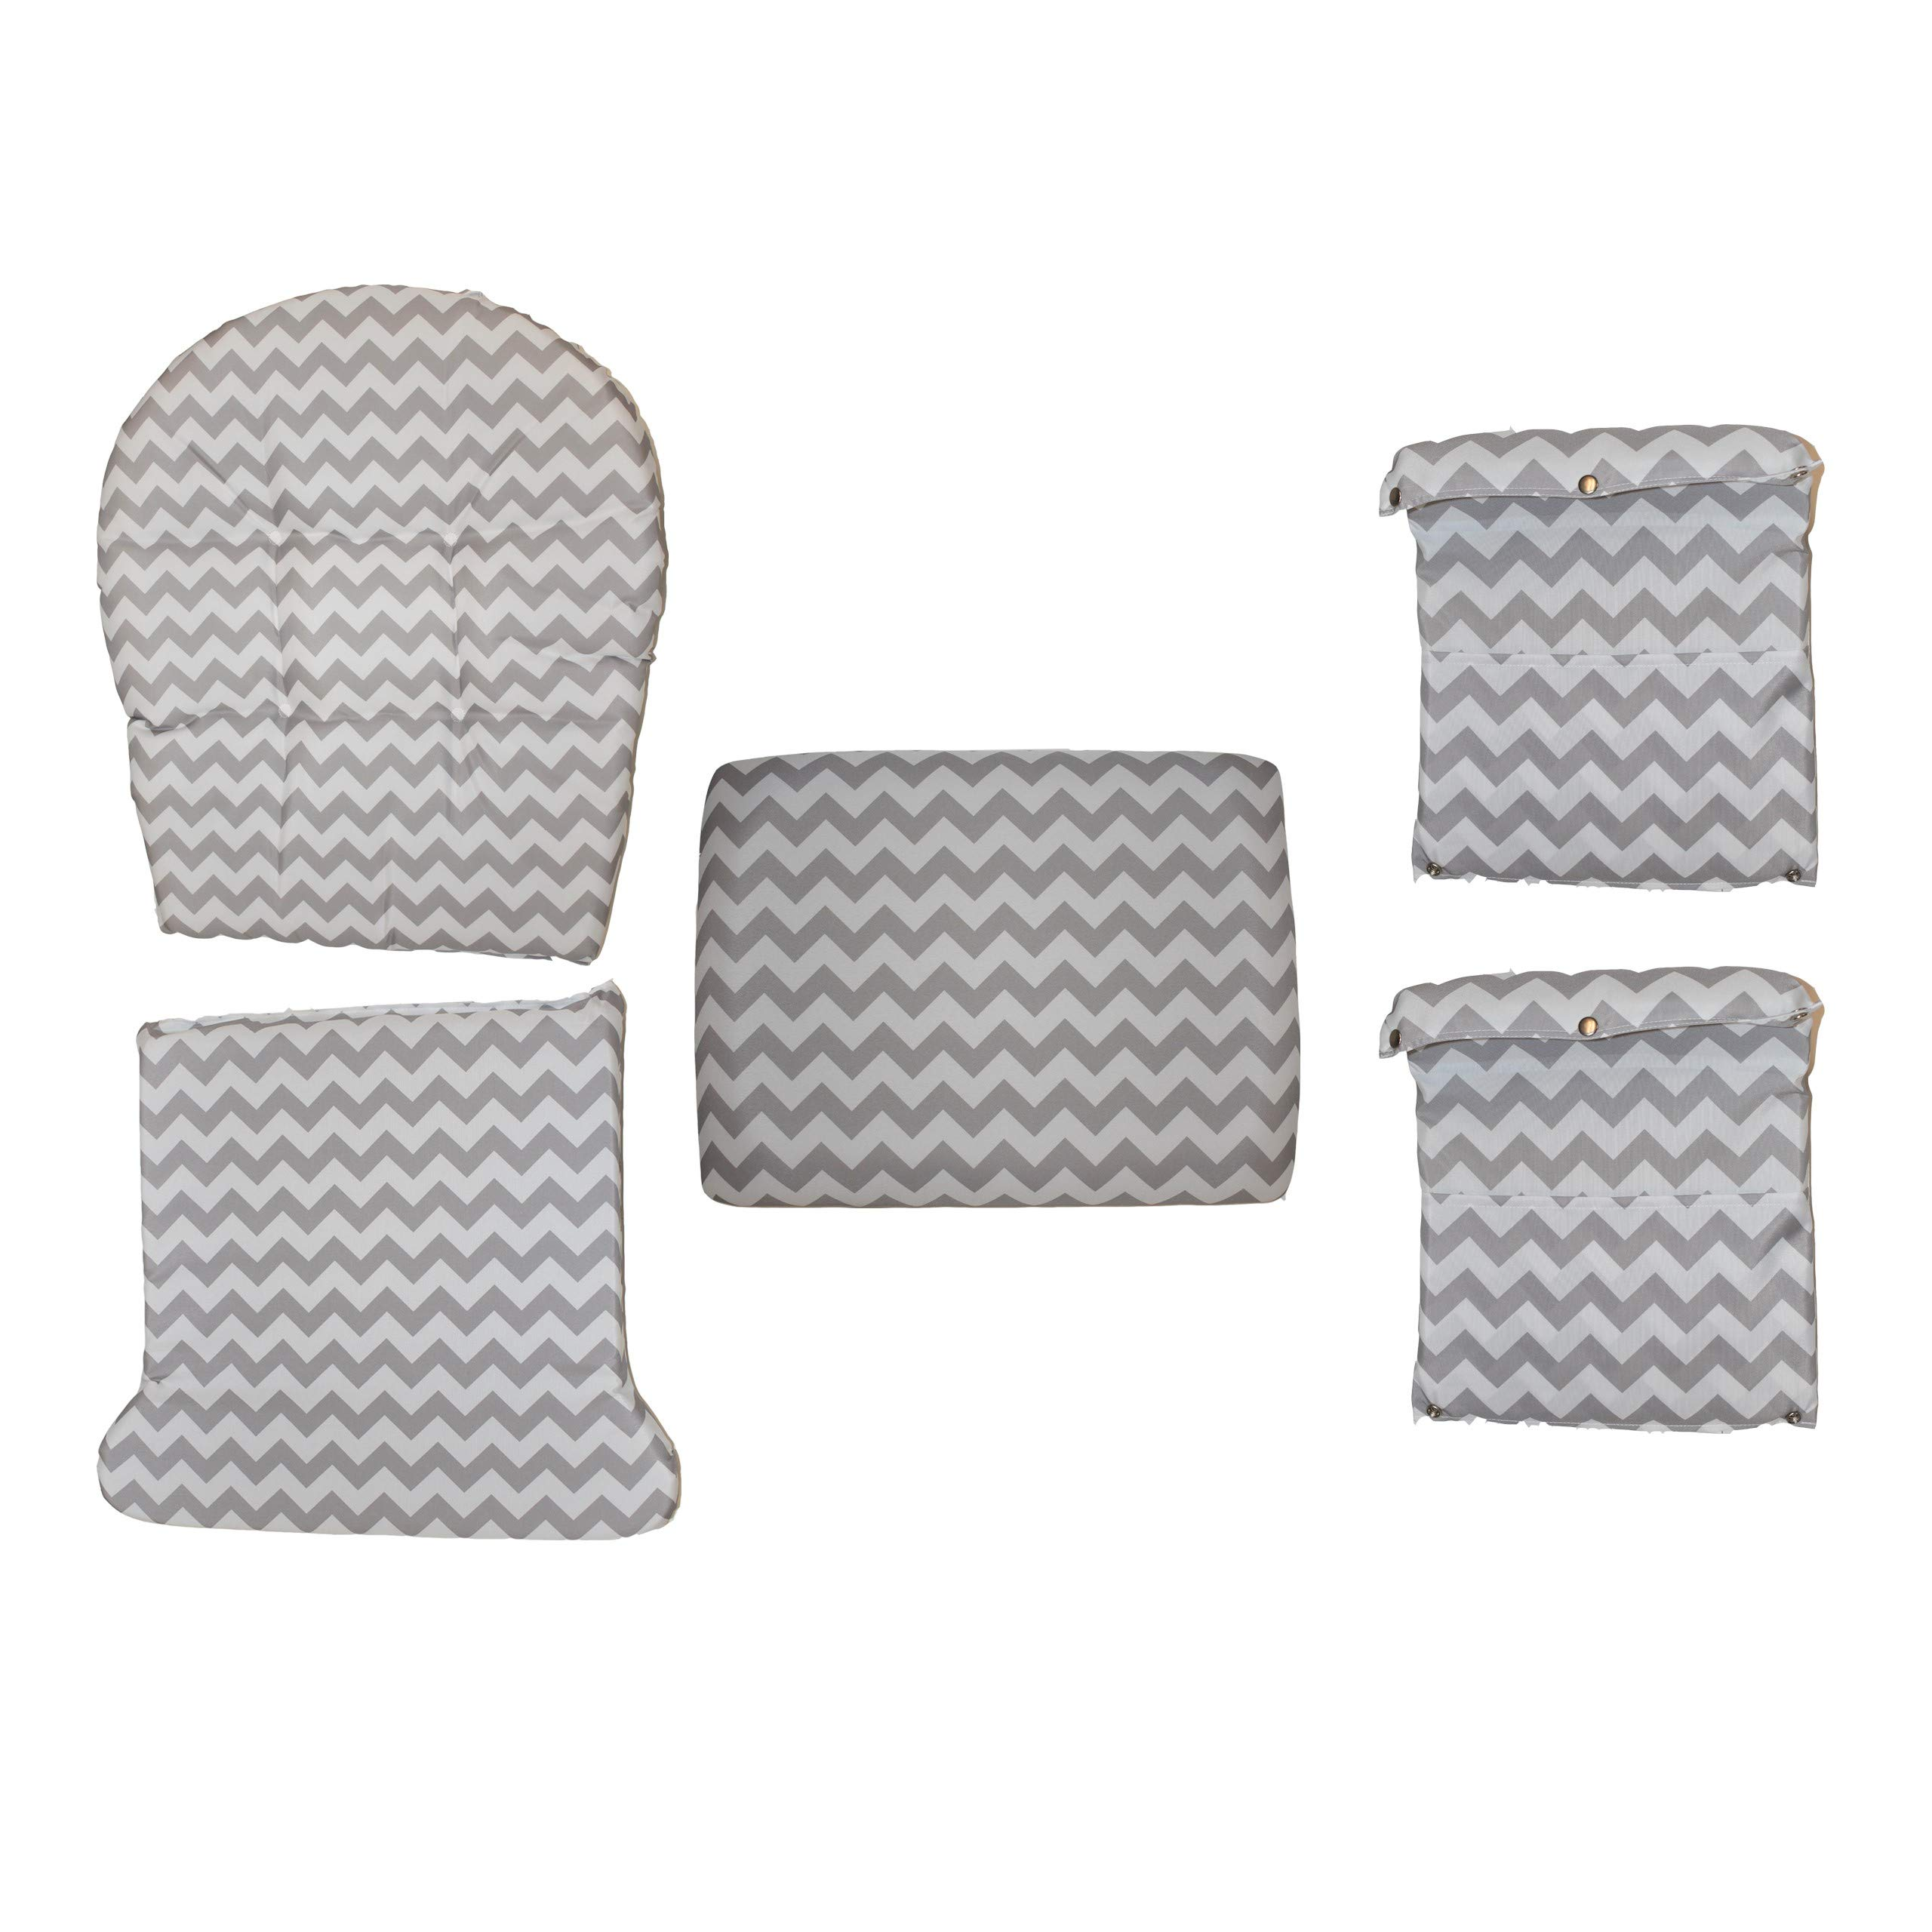 Storkcraft Hoop Glider and Ottoman Replacement Cushion Set- Stylish Cushion Replacement Set for Glider and Ottoman, 5 Pieces, Padded Arm Rests, Durable and Spot Cleanable (Gray Chevron) by Storkcraft